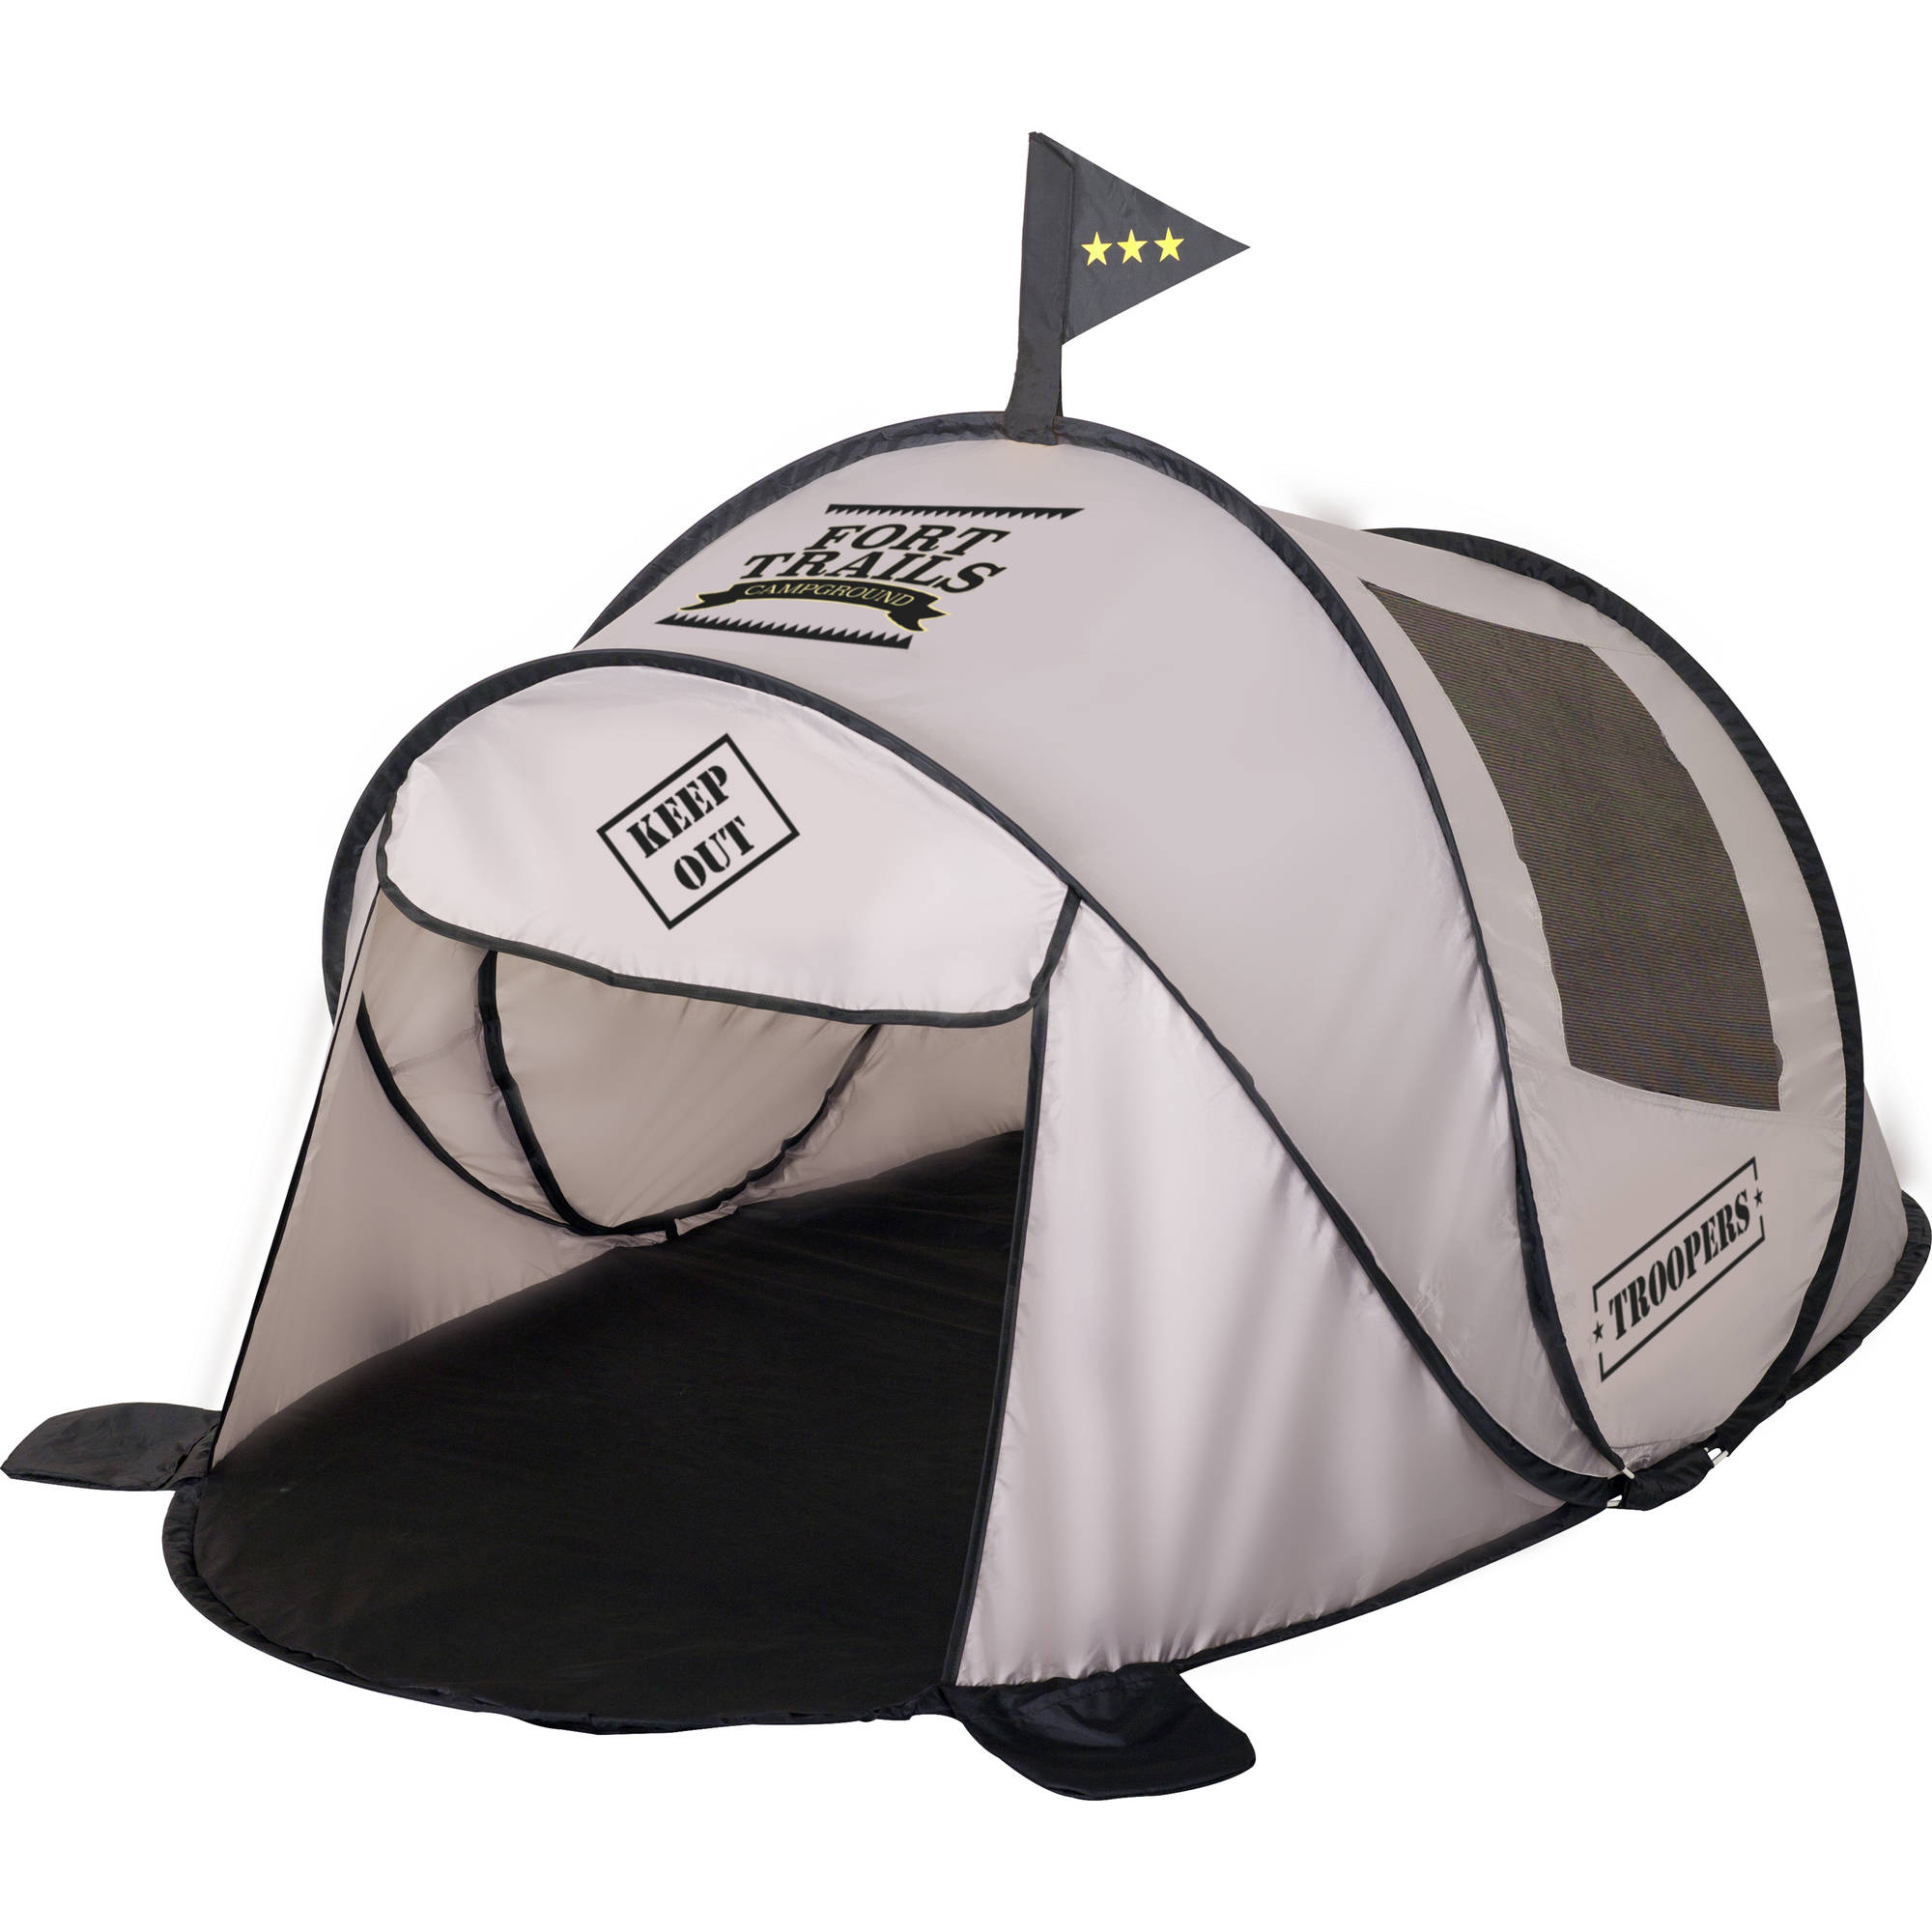 sc 1 st  Walmart : pop up childrens tent - memphite.com